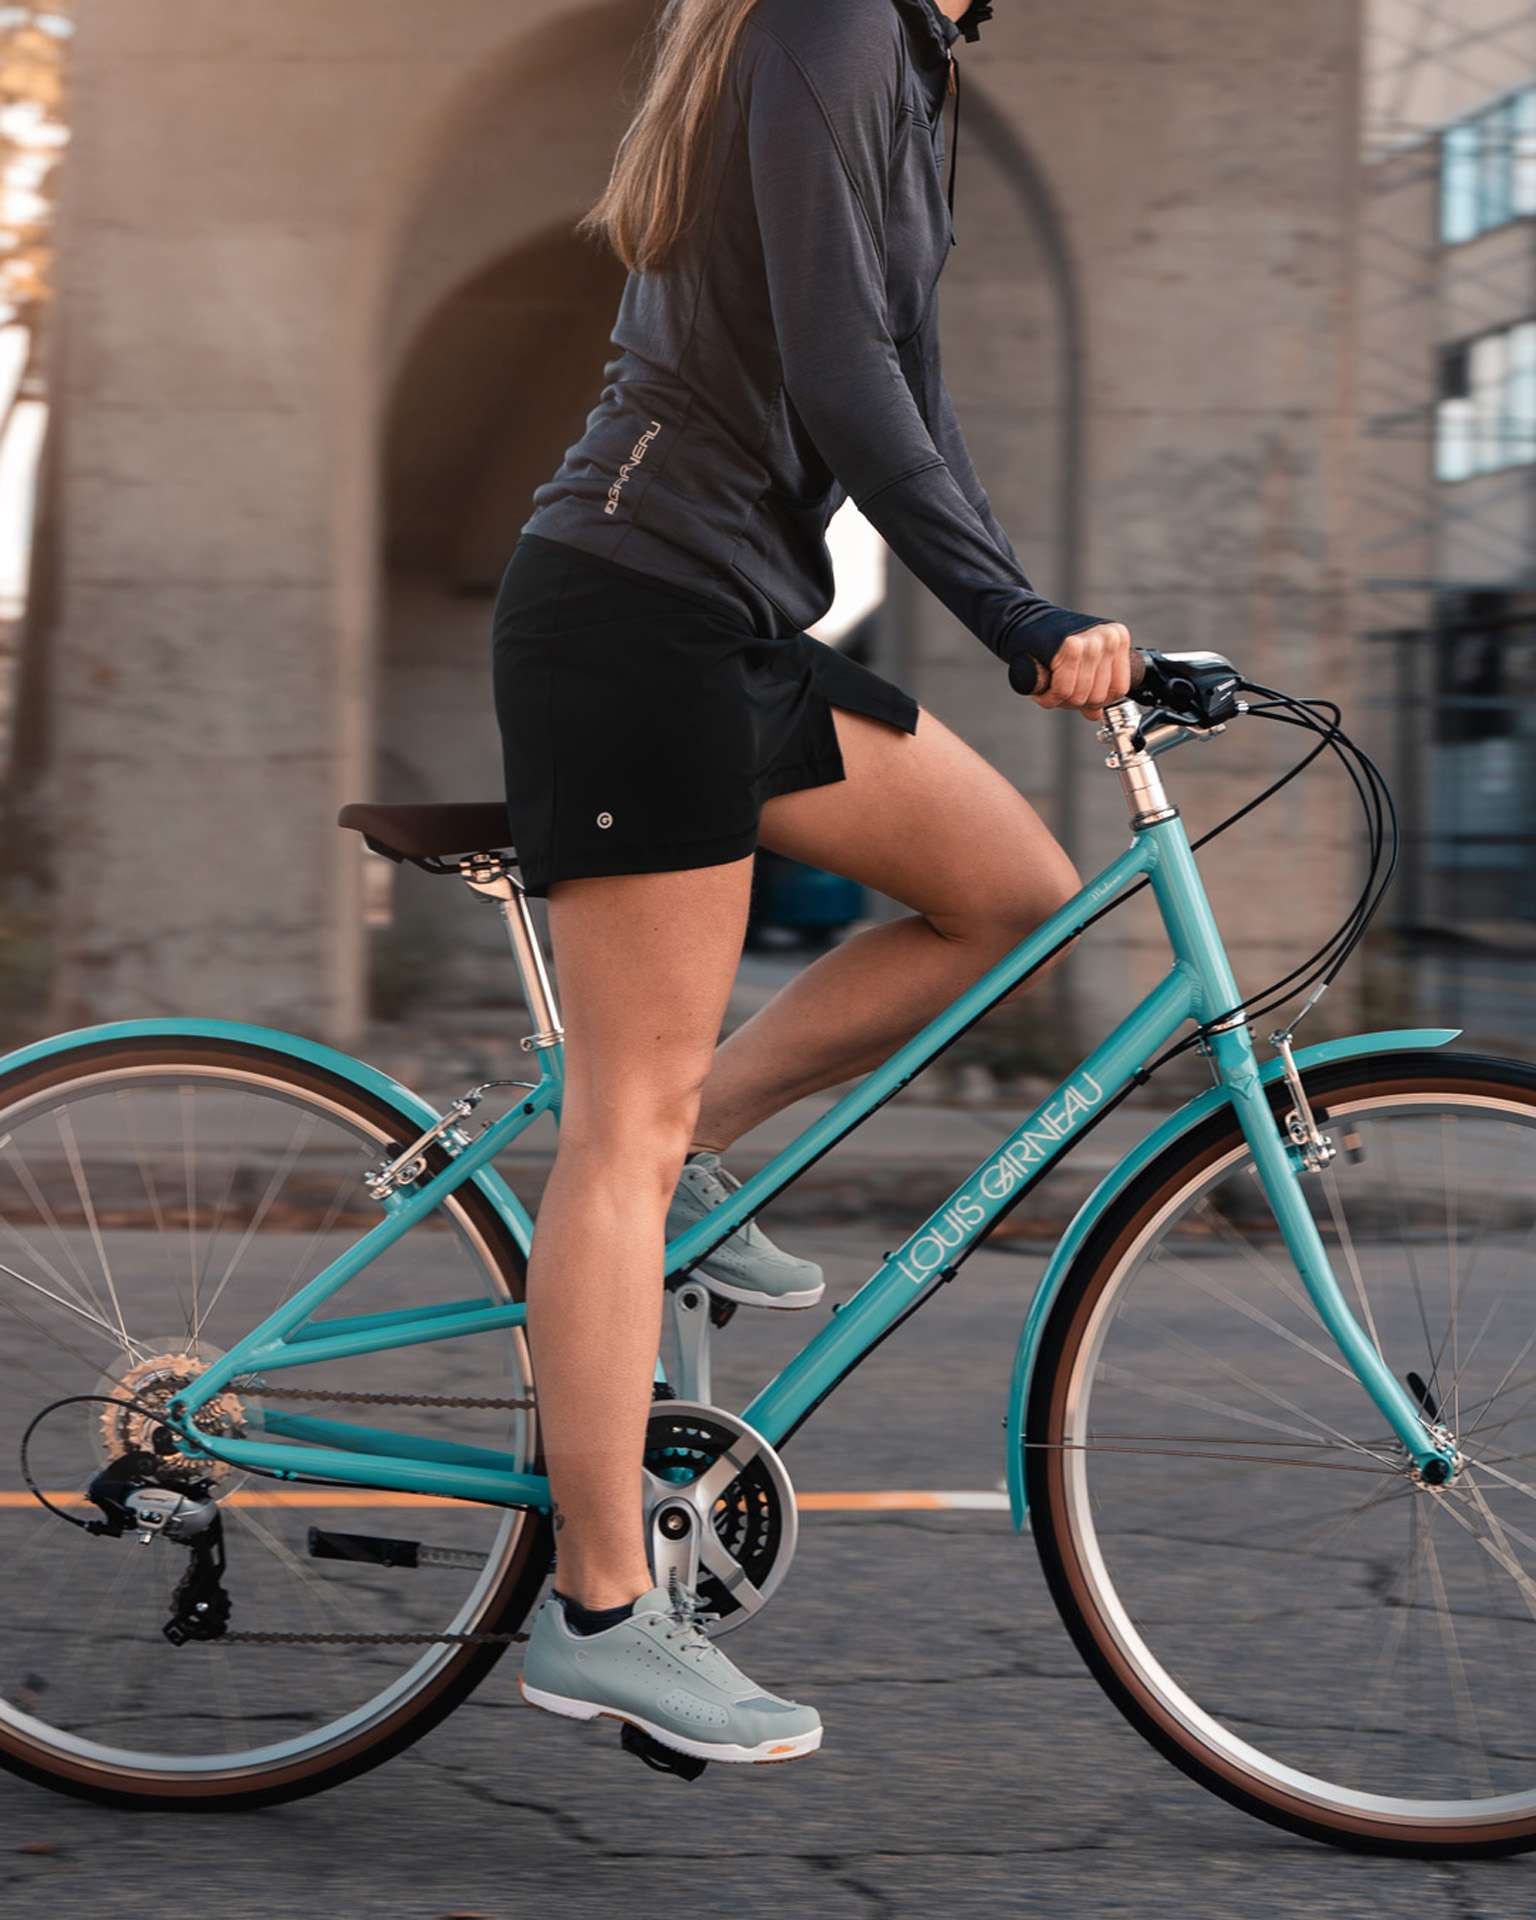 female model wearing black shorts grey jacket and grey shoes biking on turquoise bike for Spring Summer 2020 campaign of Louis Garneau with artistic direction and styling by Studio TB